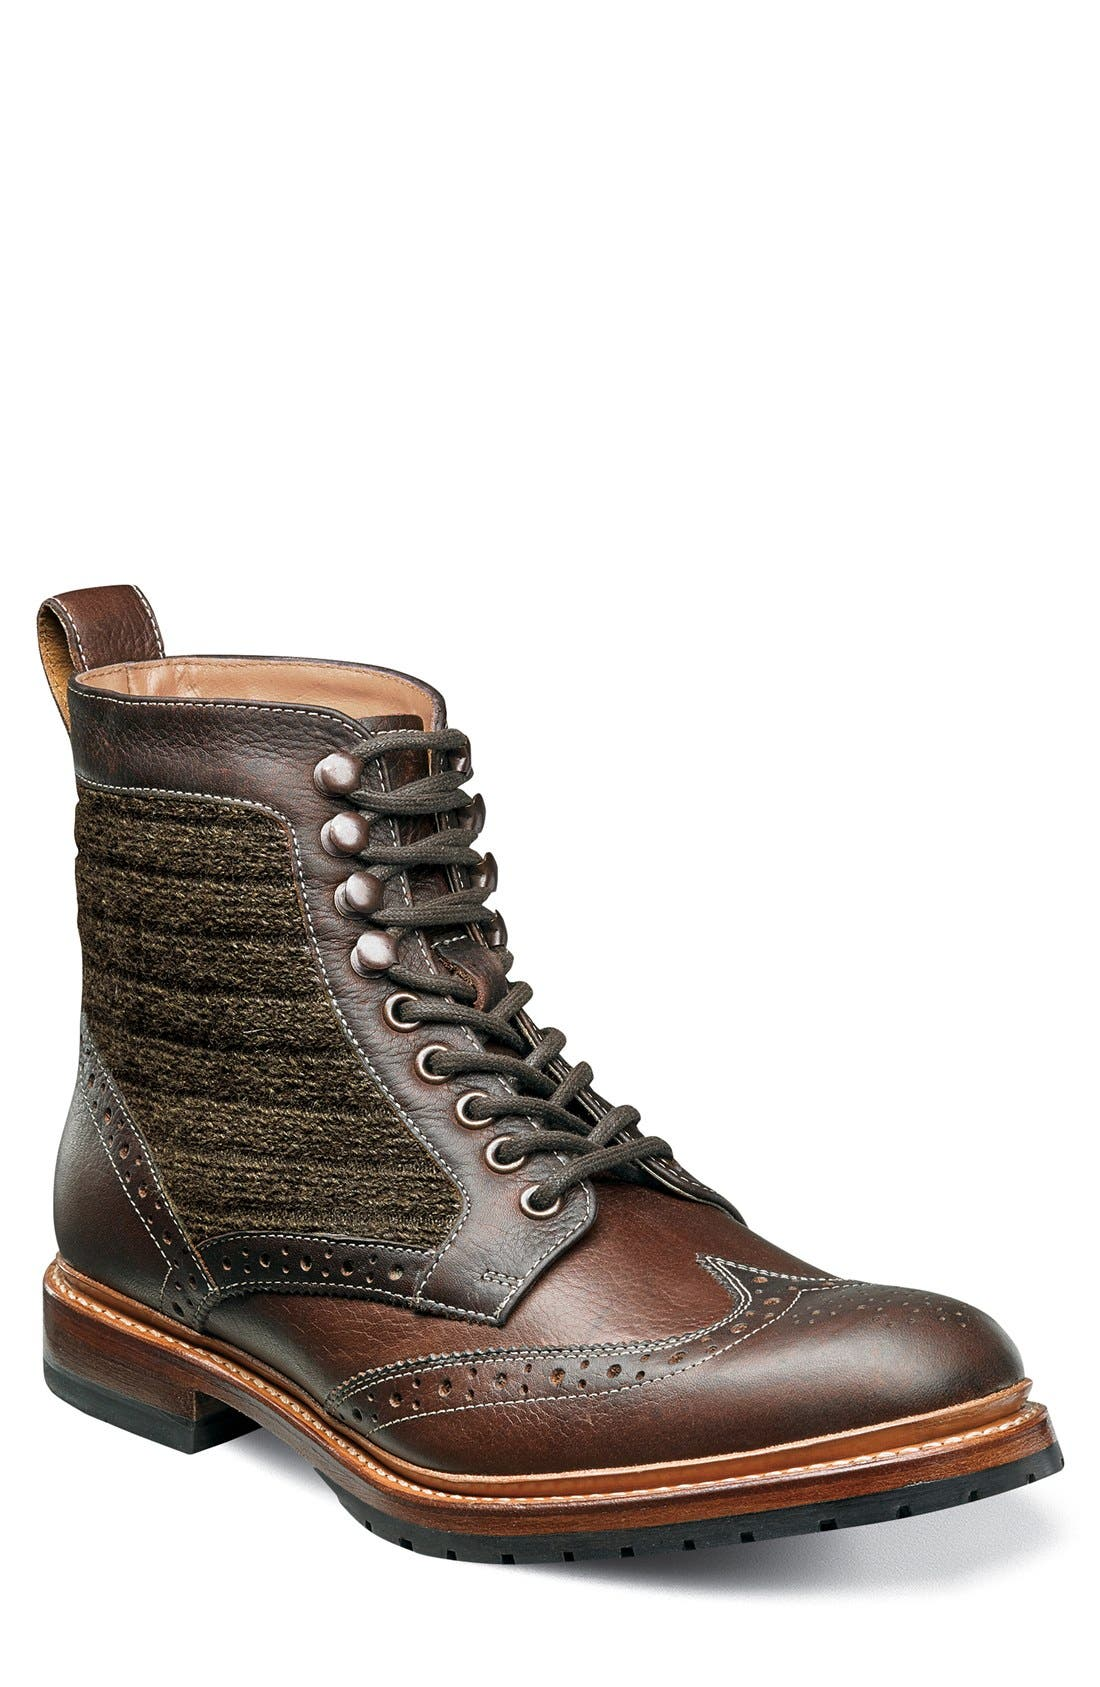 Madison II Wingtip Boot,                         Main,                         color, Brown Multi